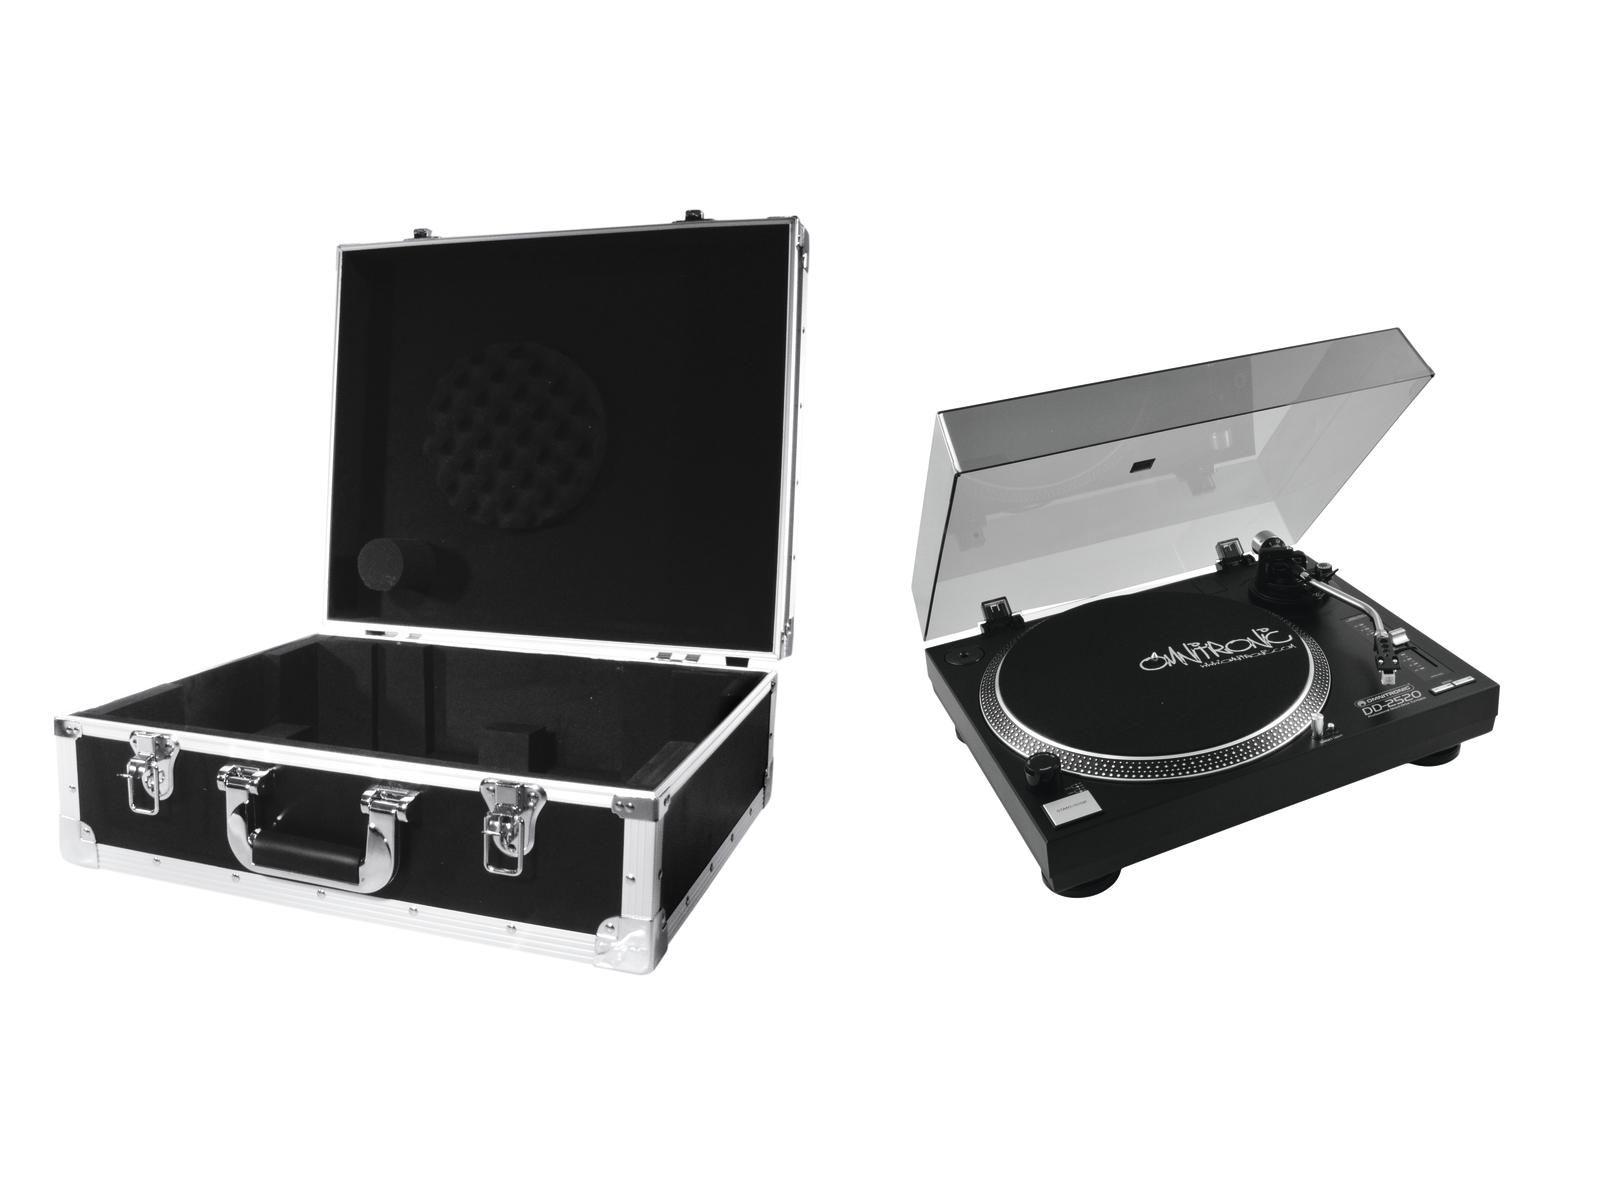 Turntable Tv USB direct drive with flight case OMNITRONIC DD-2520